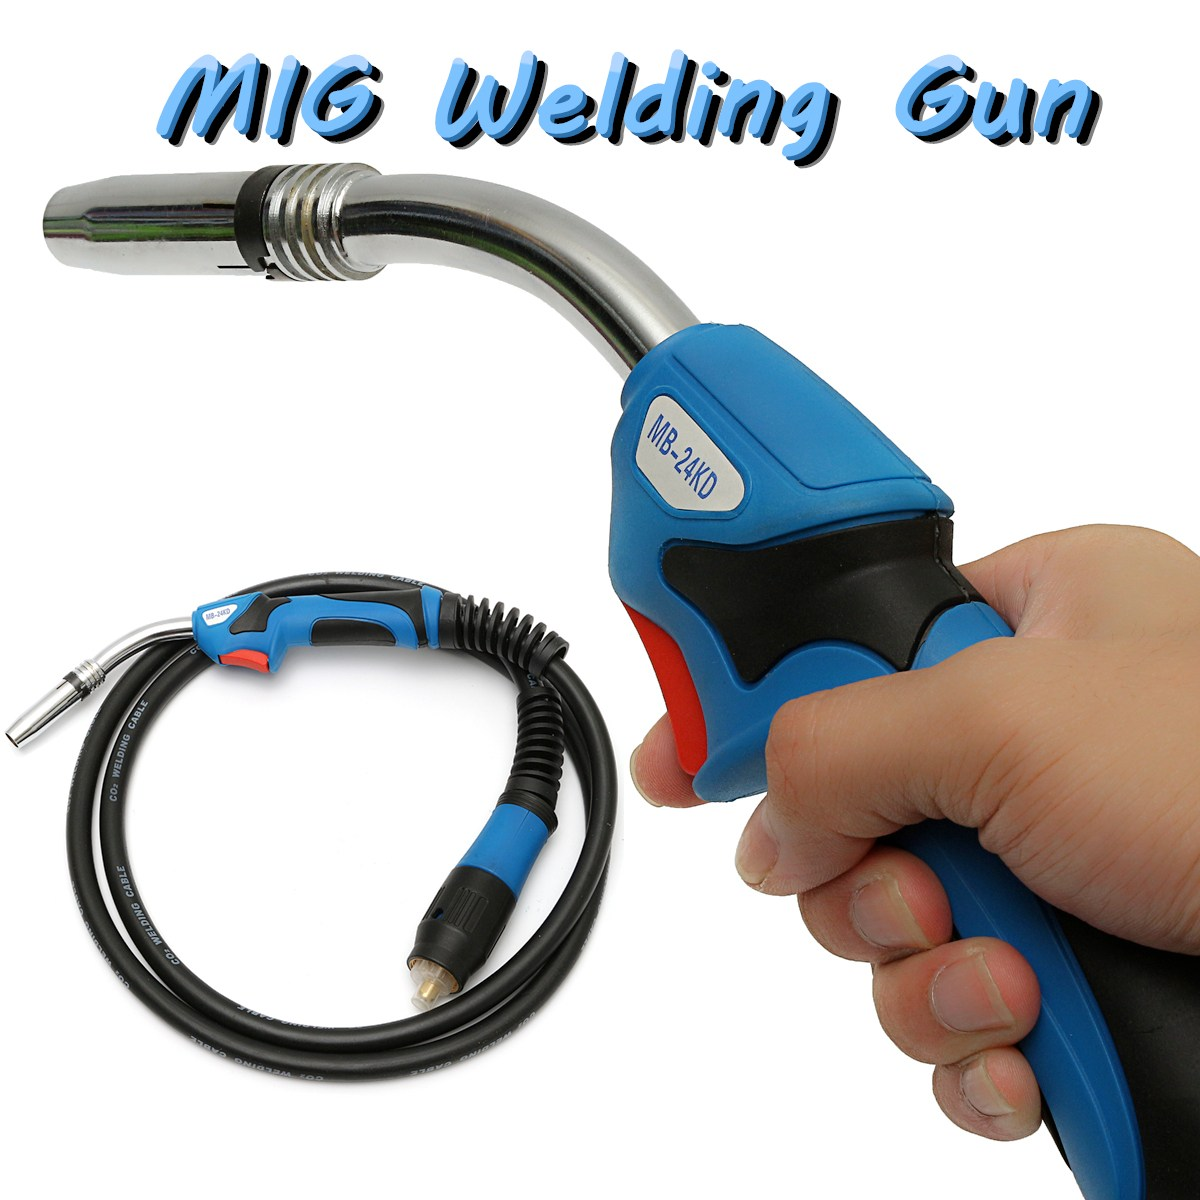 MB24 MIG Welding-Gun Torch 250 Amp with 10ft/ 3 Meter Lead Binzel Style Euro Adapter mb 24kd mig mag welding torch 3 meter